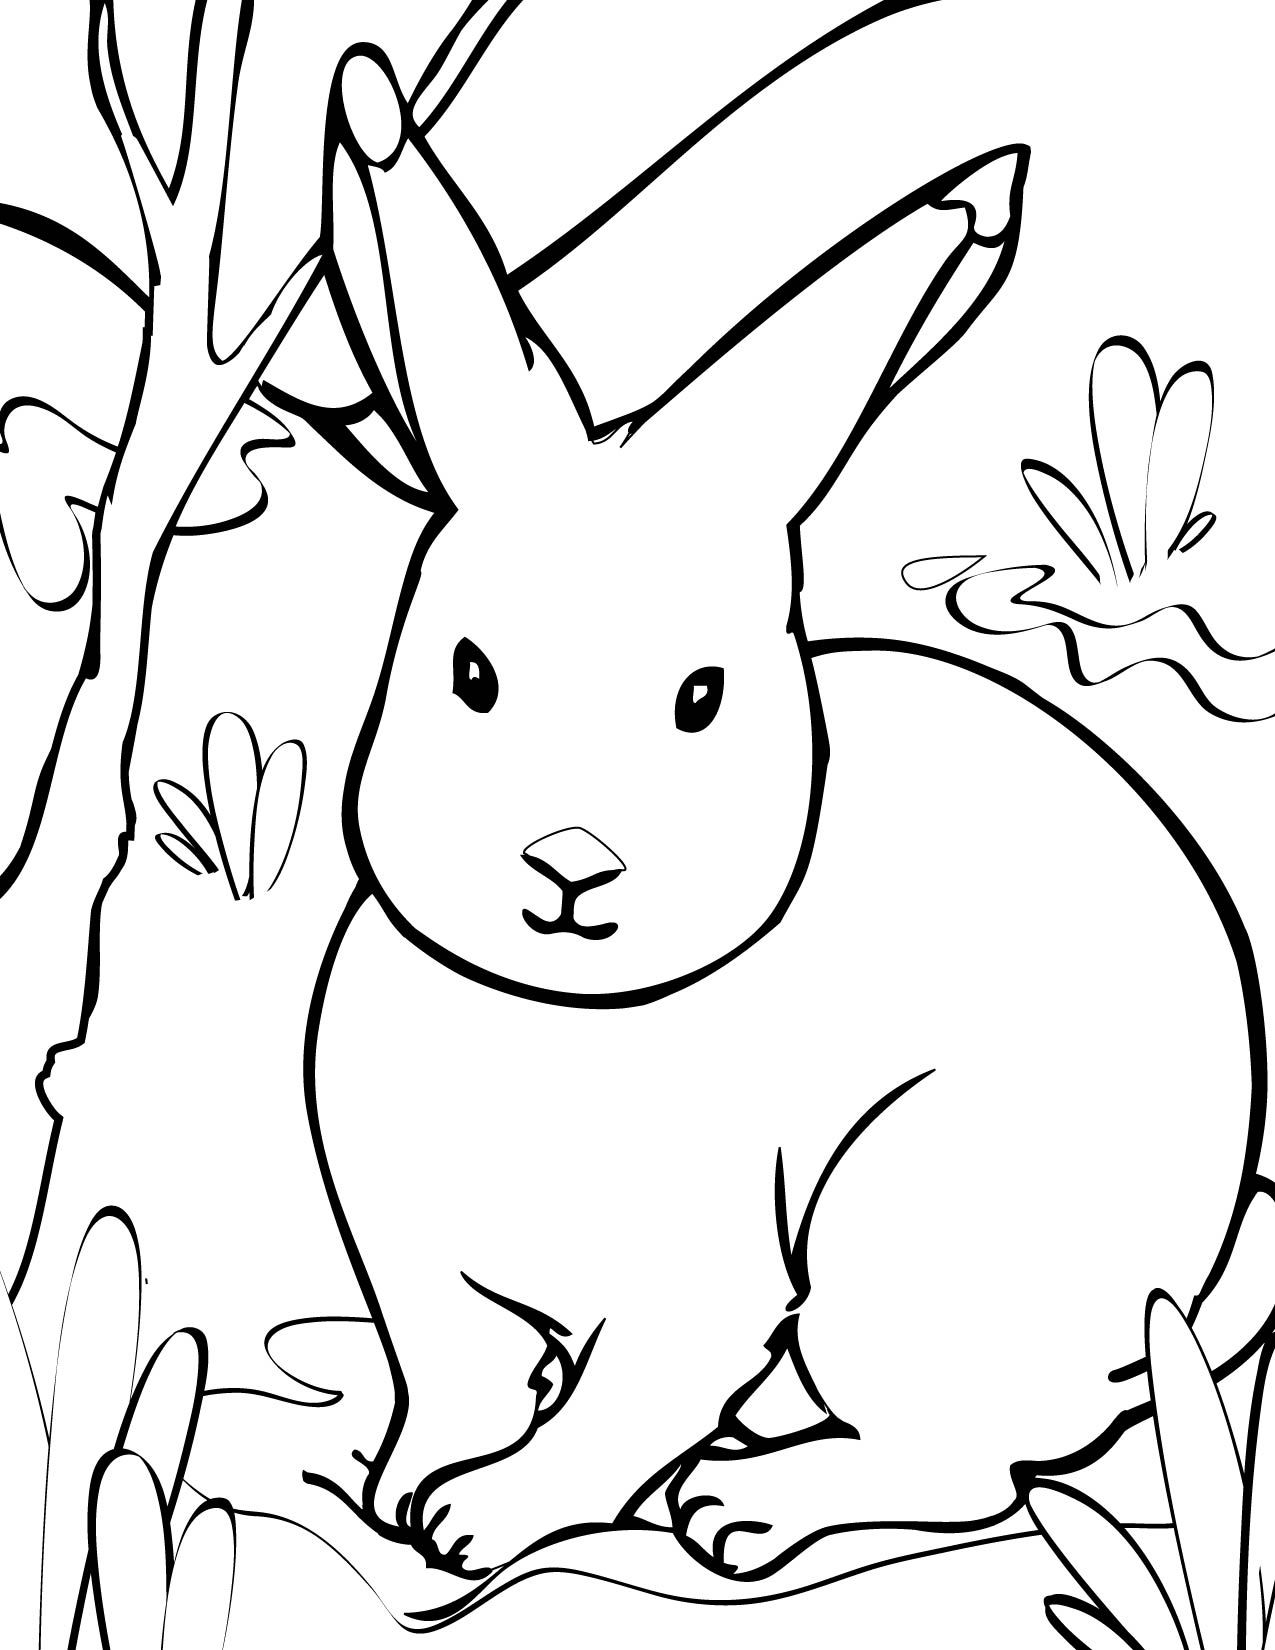 Animal Coloring Pages Print This